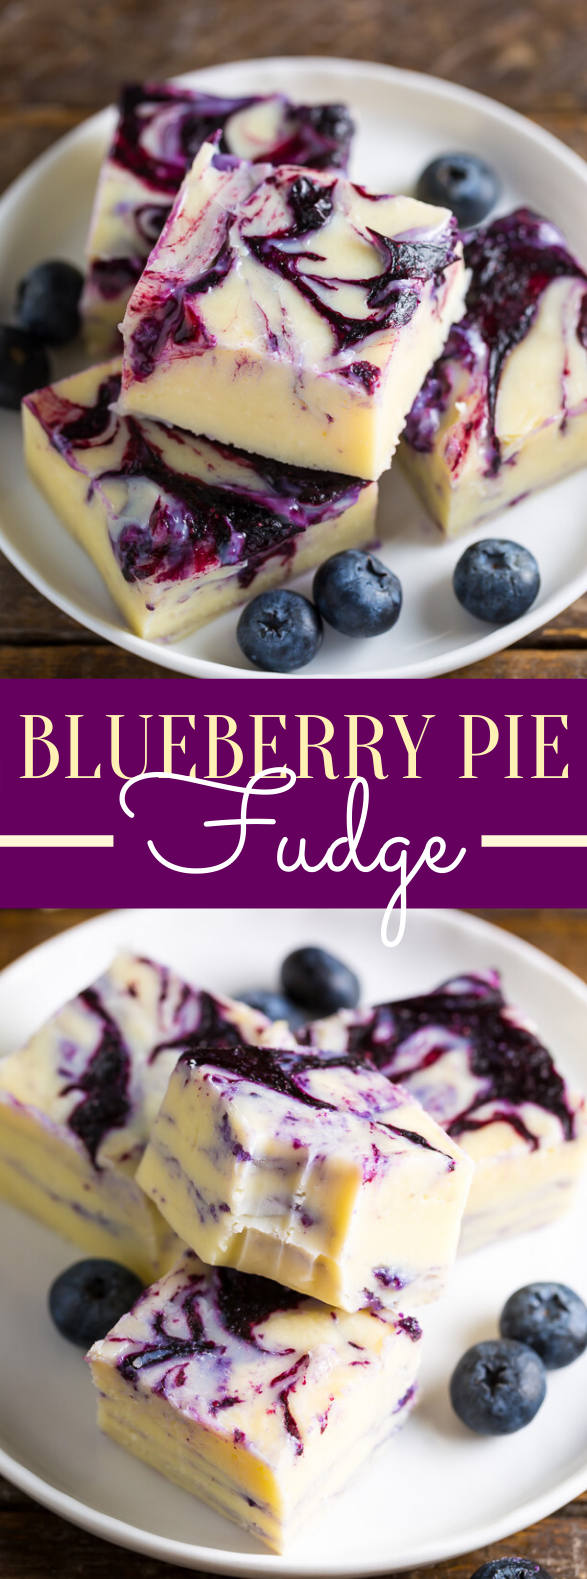 Blueberry Pie Fudge #desserts #frozenrecipes